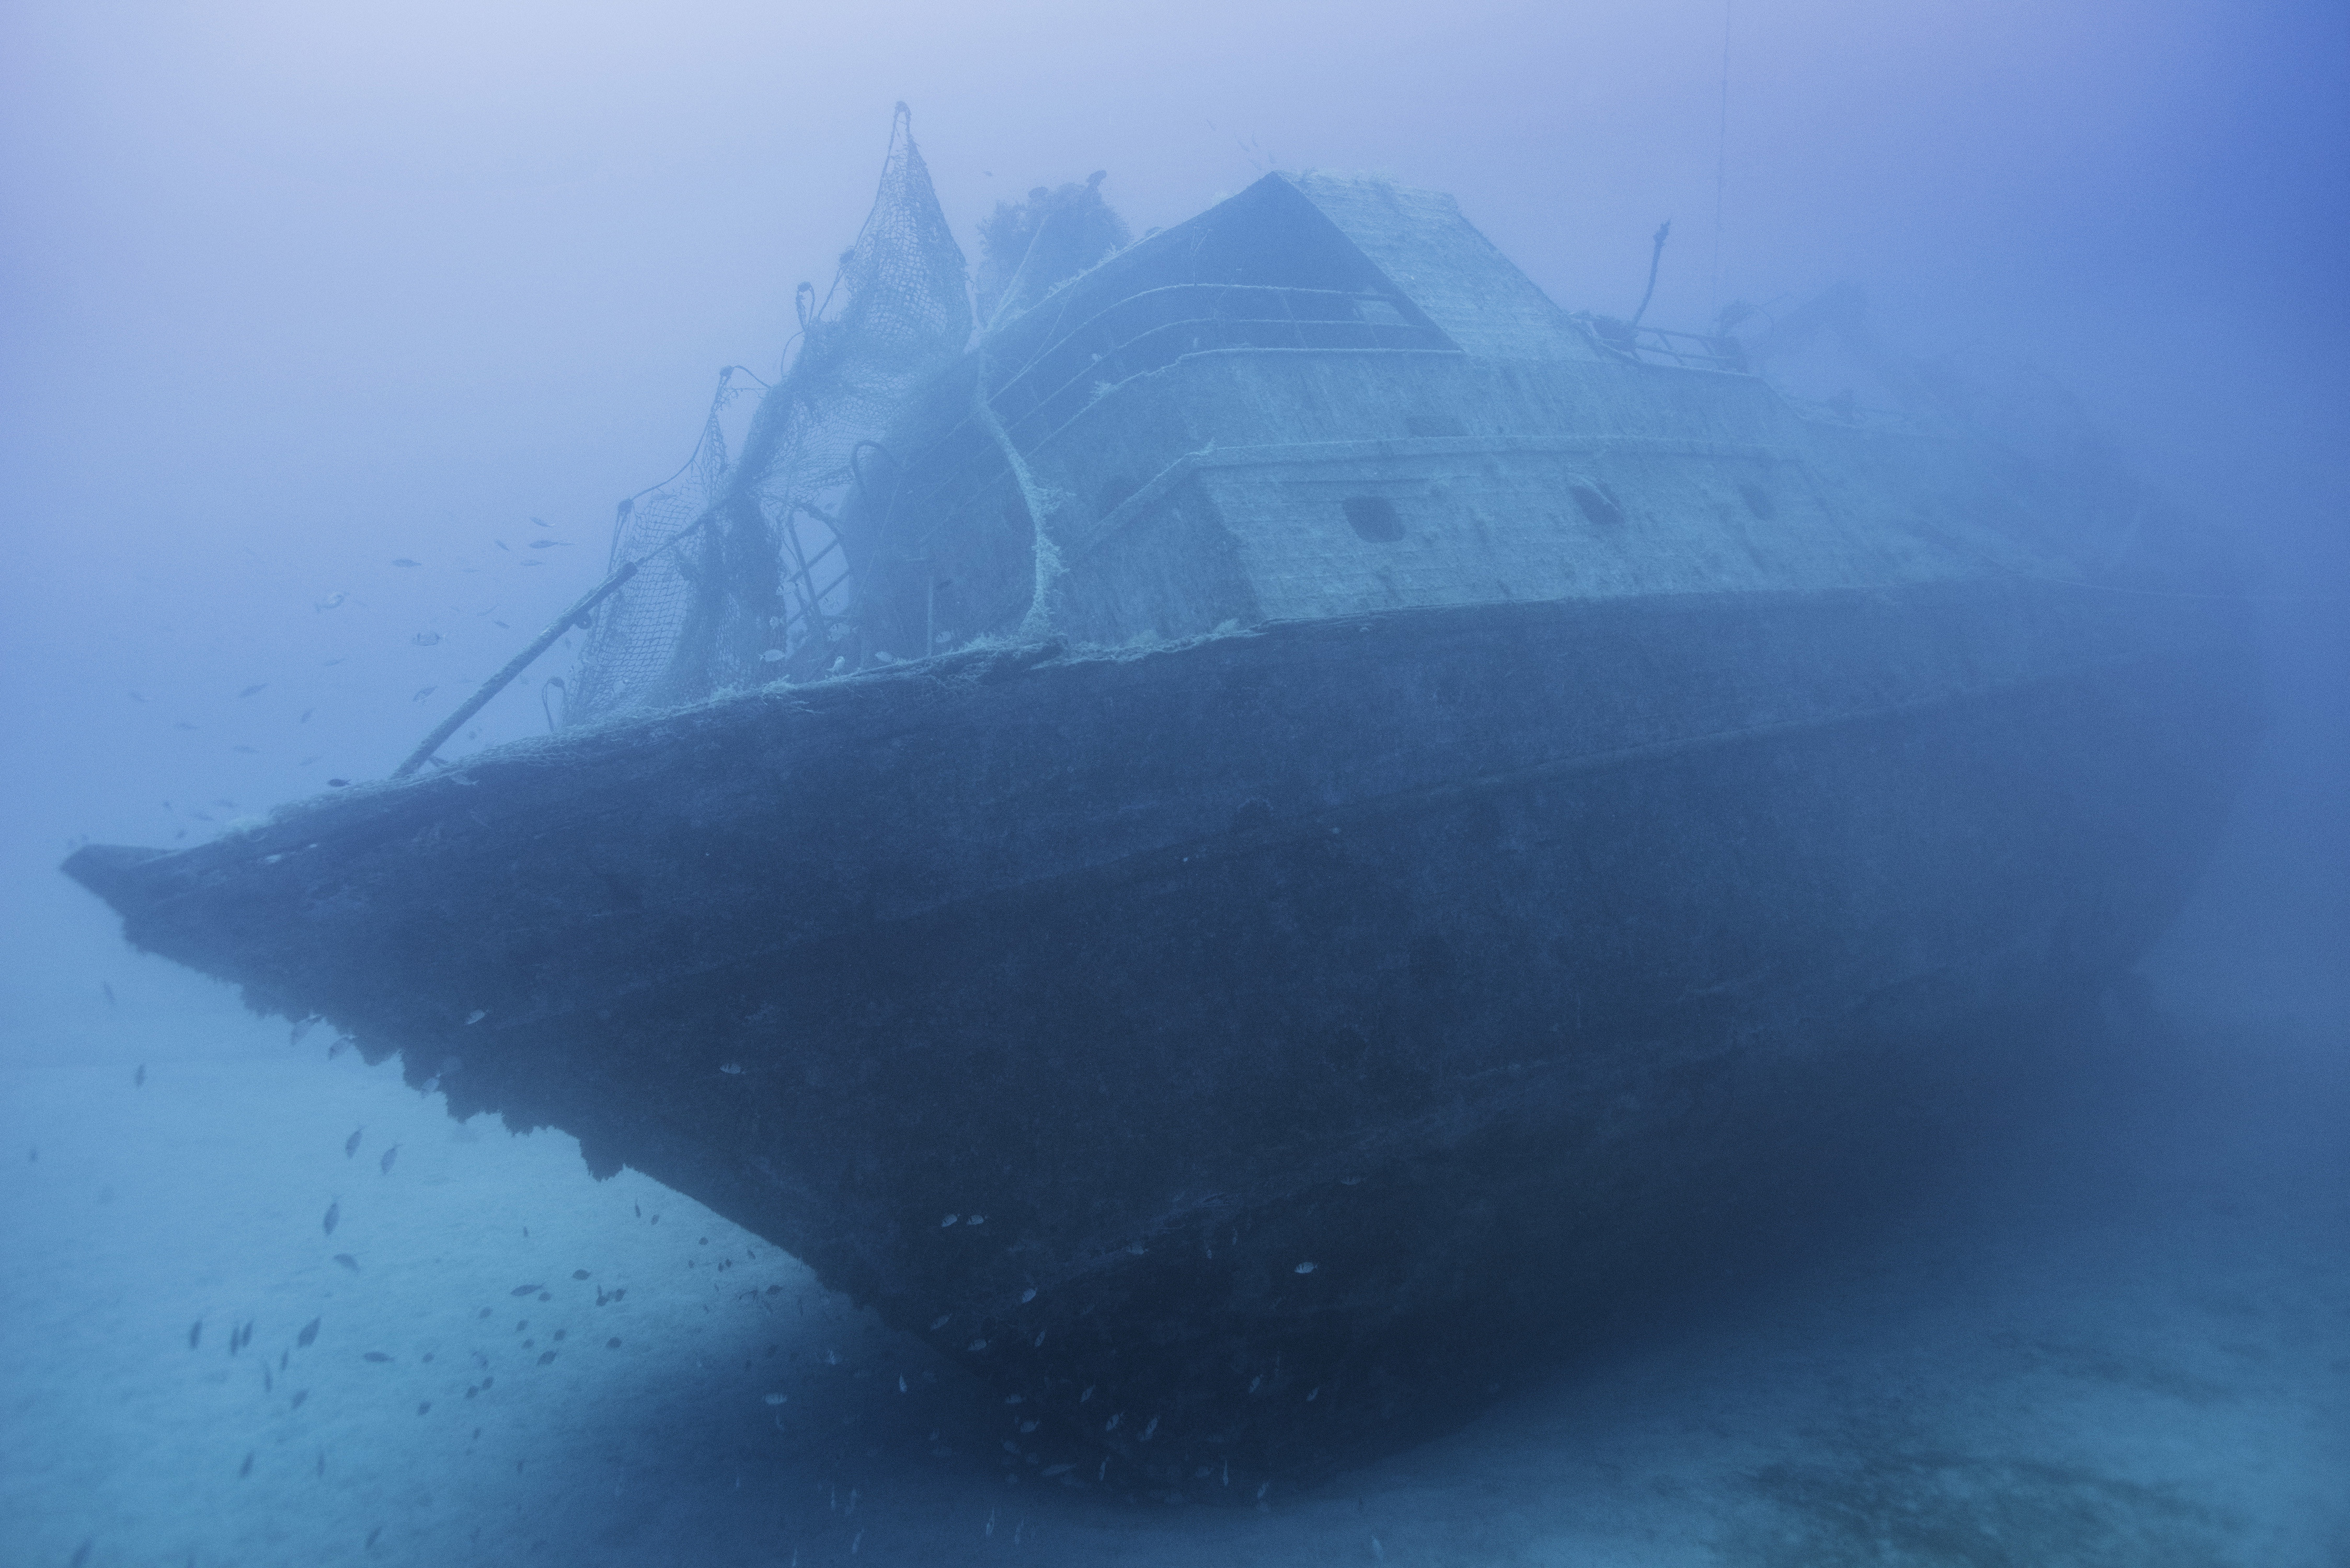 The shipwreck of the 66-foot-long fishing boat that sank off the coast of Lampedusa, Italy, lies at a depth of 164 ft. on the seabed, on Sept. 22, 2014. The tragedy that happened a year ago on Oct. 3, 2013 killed 366 migrants from North Africa.